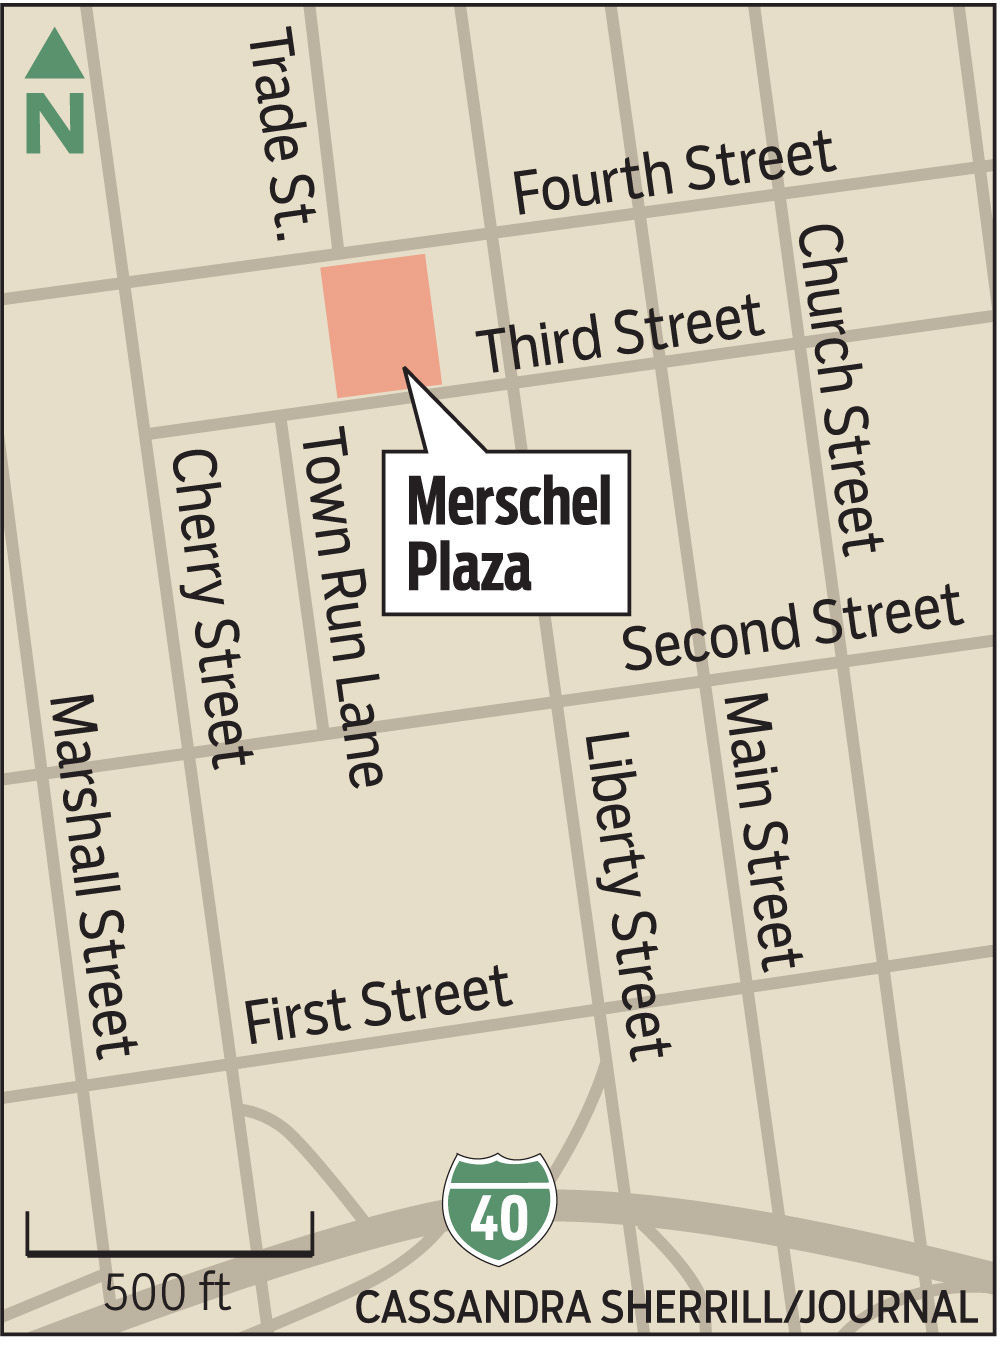 Central park in downtown Winston-Salem? City panel endorses paying partnership $4.6 million to finish Merschel Plaza with sidewalks, public restrooms | Winston Salem Journal